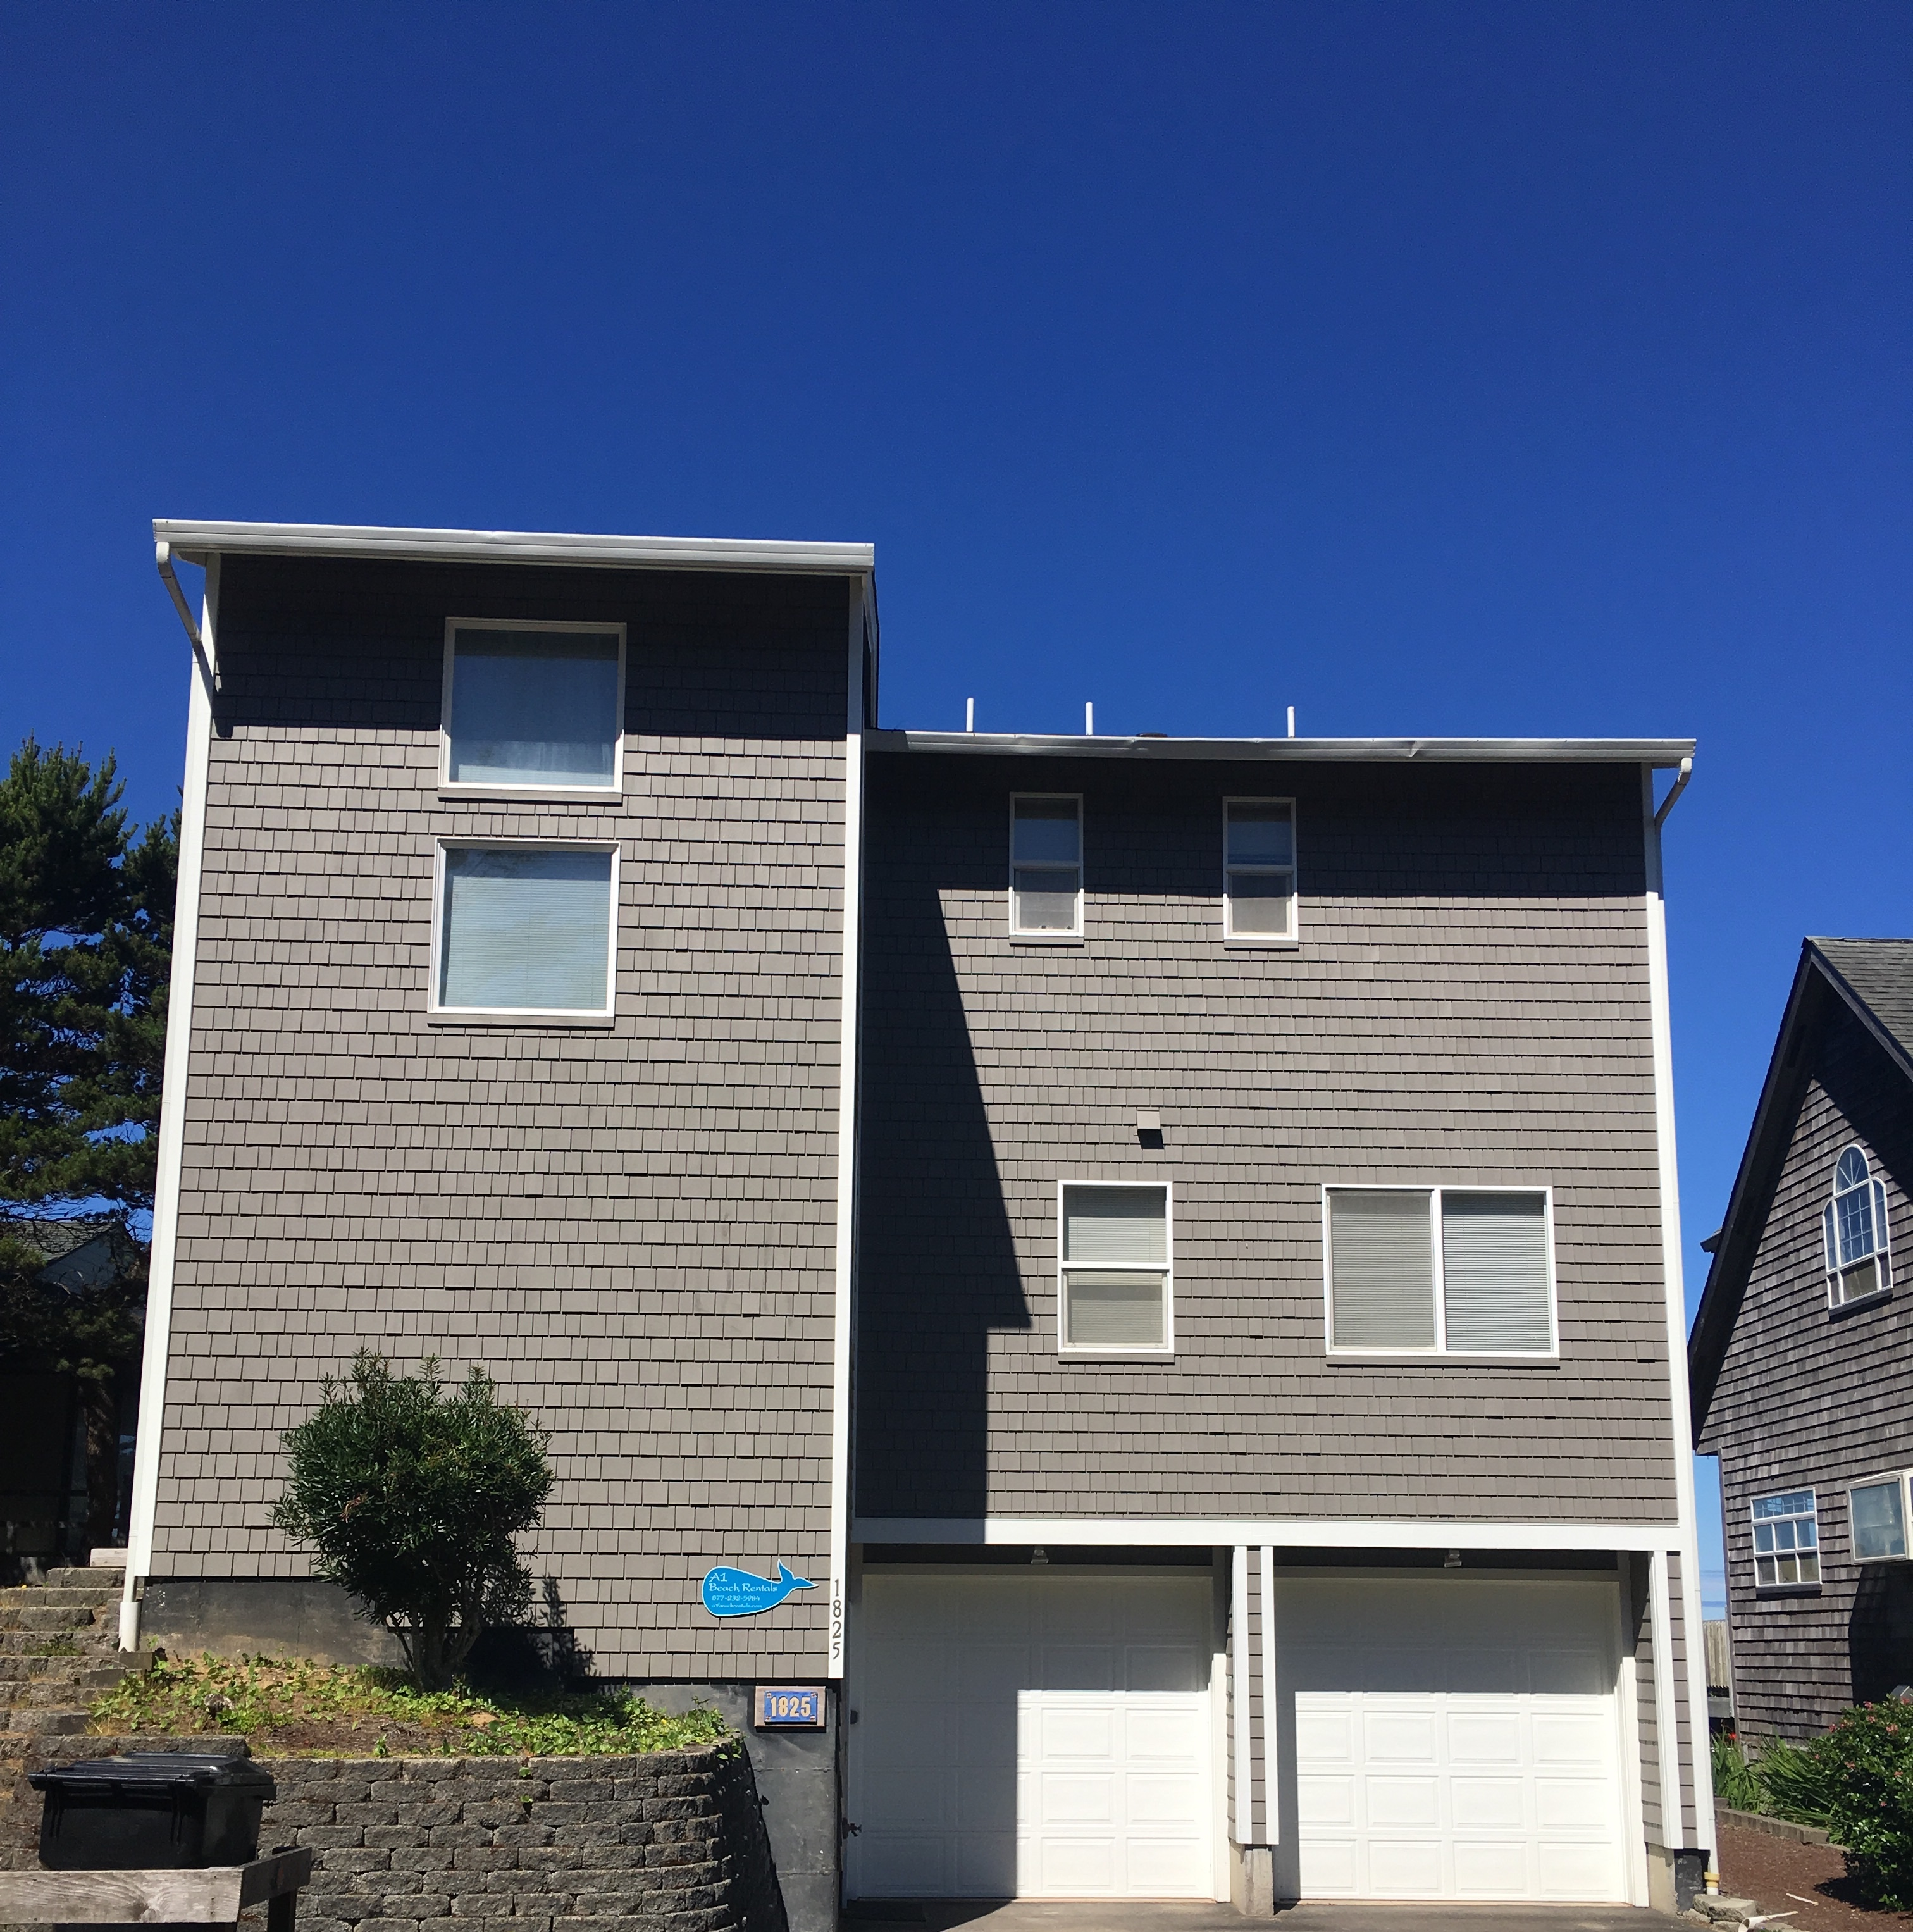 Vacation Rentals In Lincoln City Or: Pacific Escape Beach House Rental